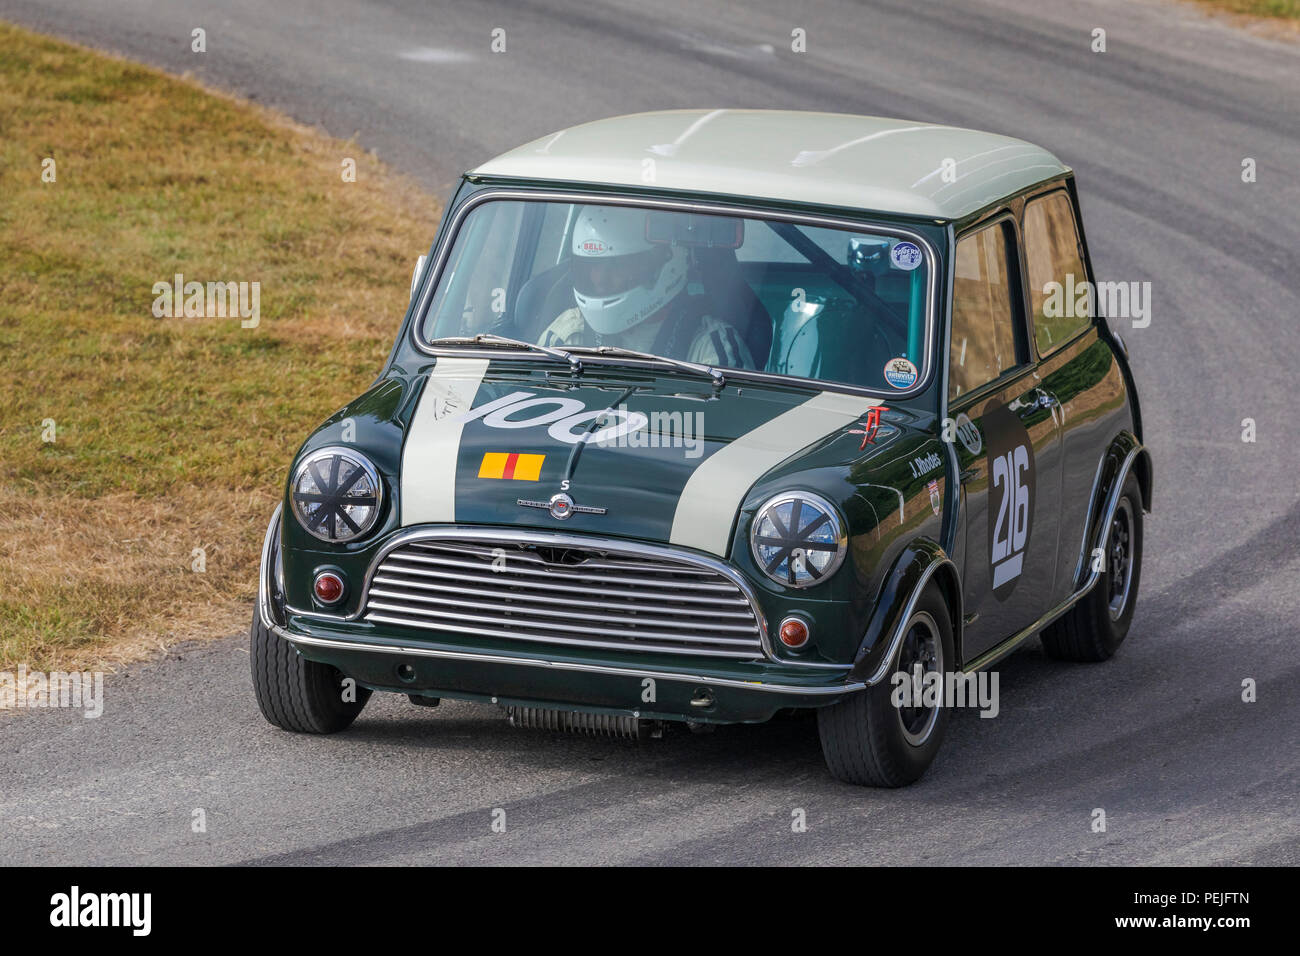 1965 Morris Mini Cooper Bscc Racer With Driver Charles Rainford At